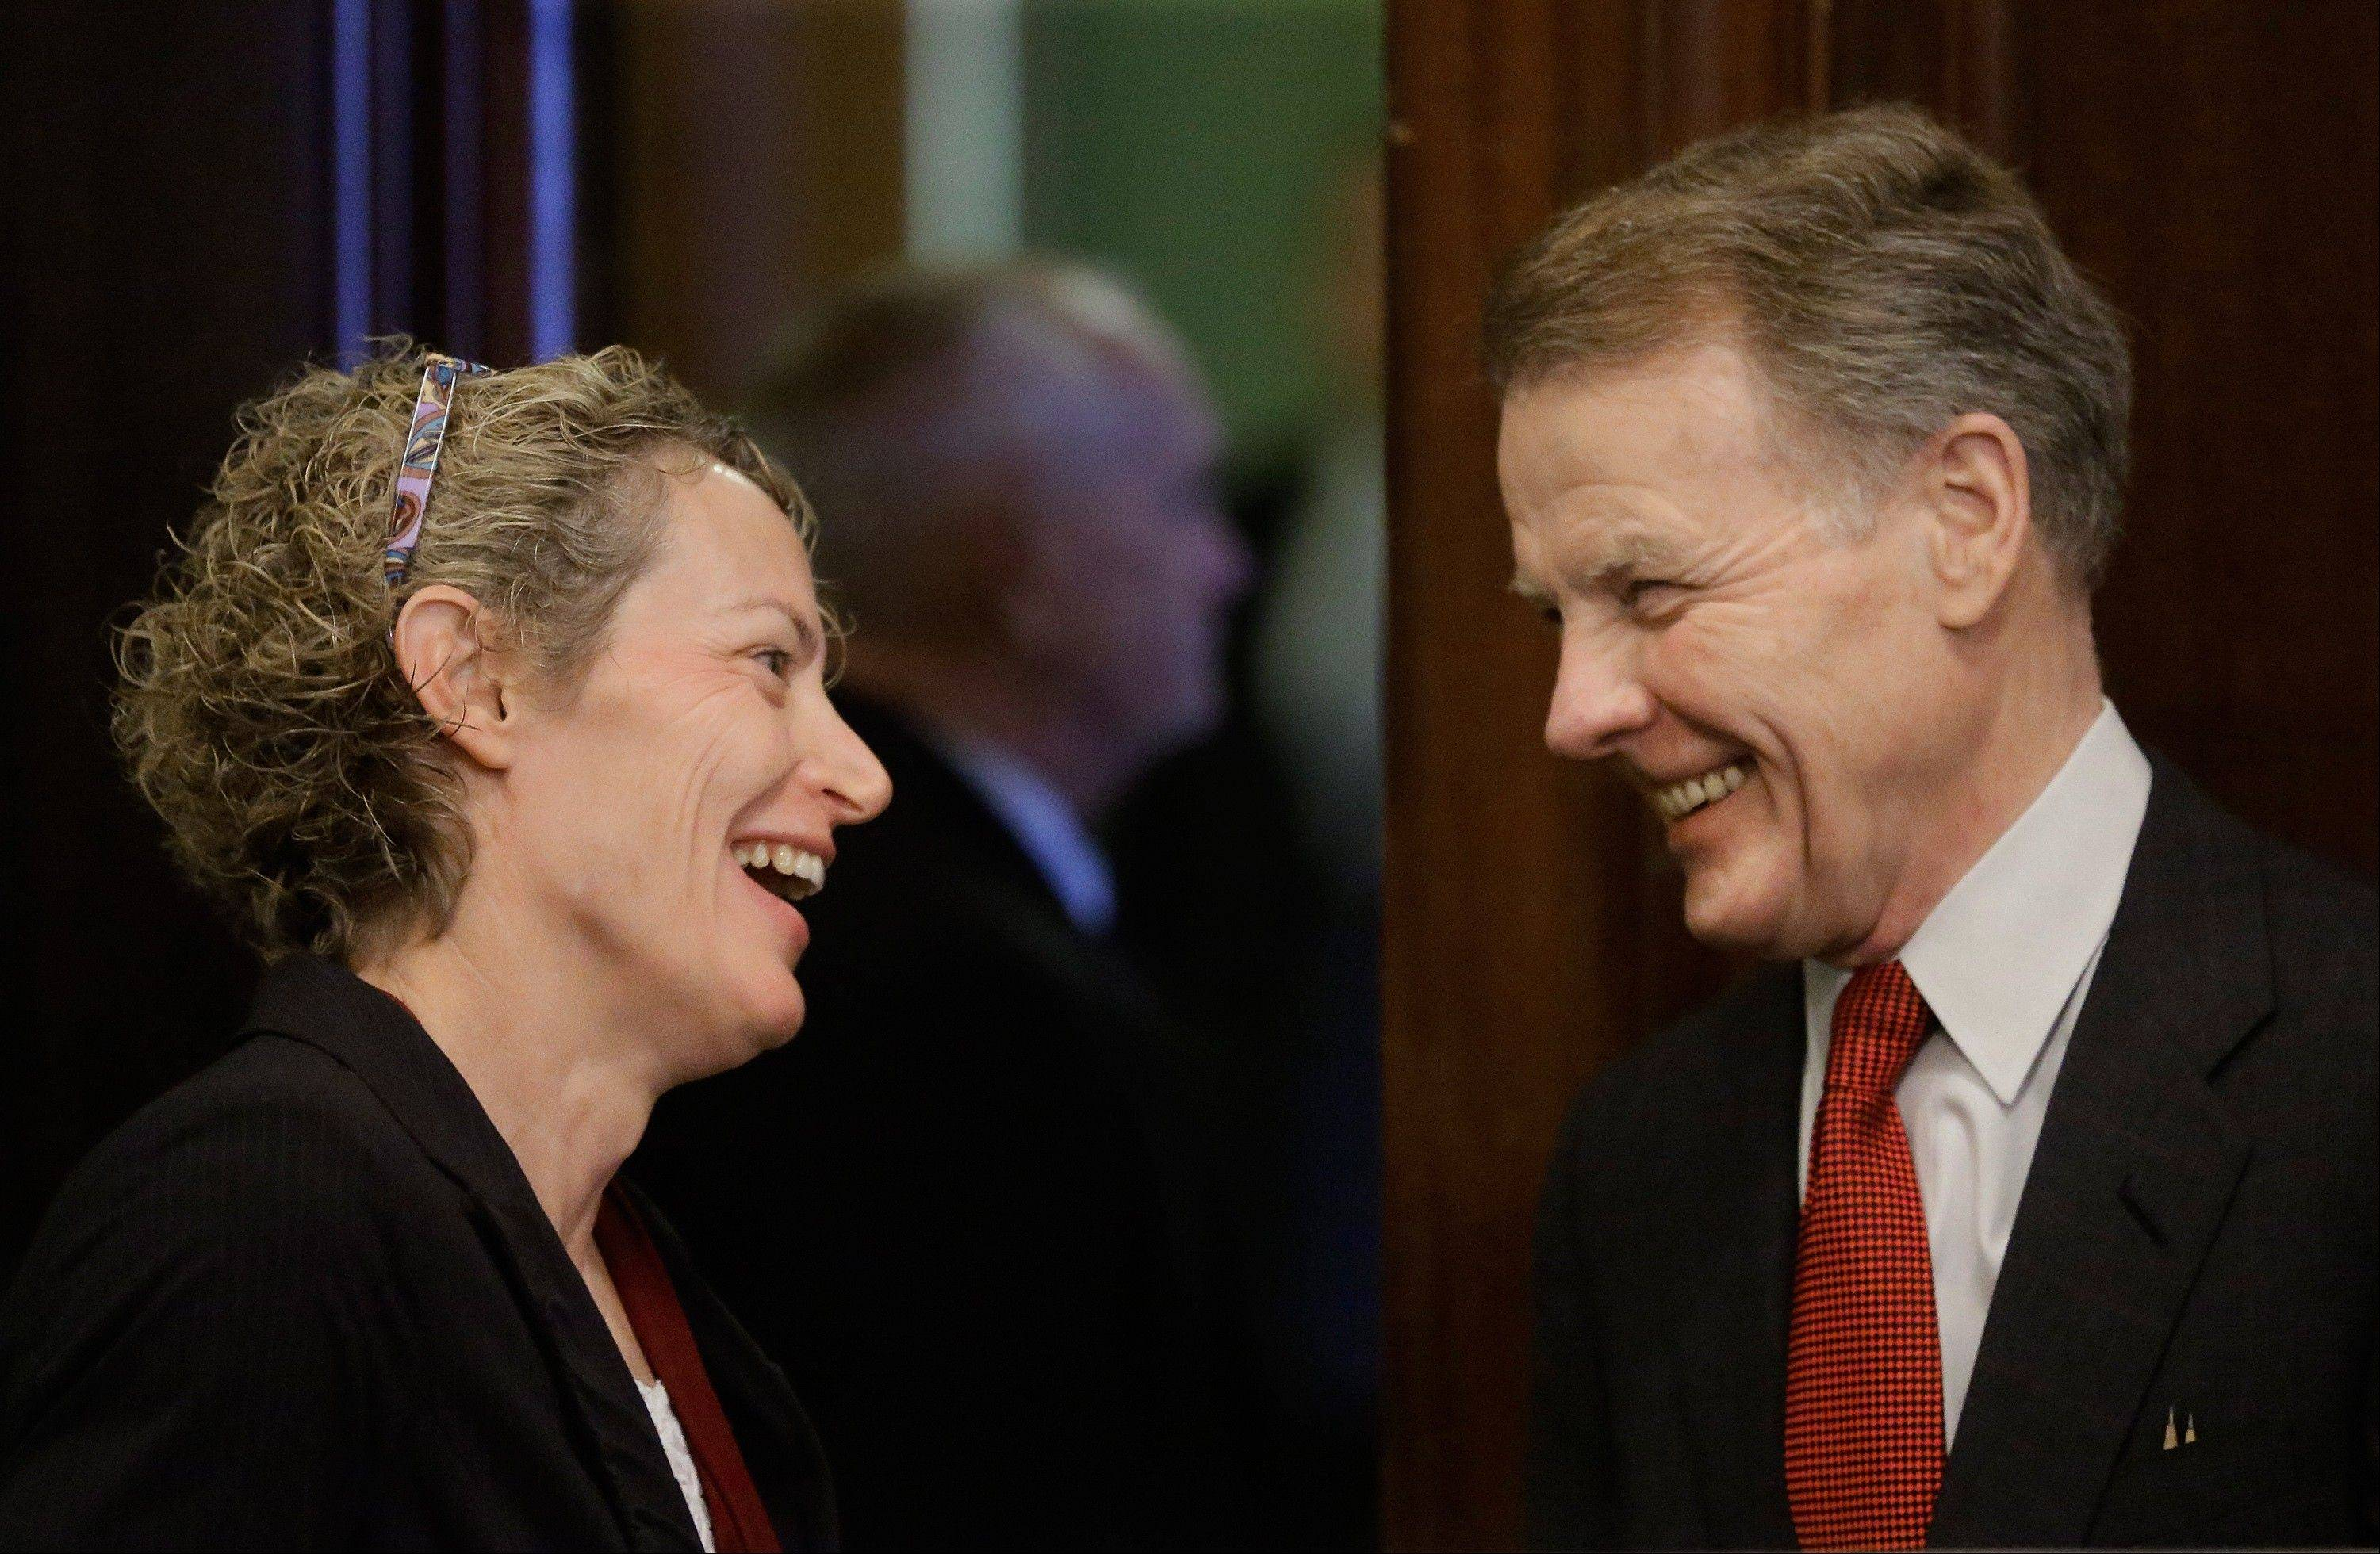 Illinois Speaker of the House Michael Madigan of Chicago, right, and Illinois Rep. Elaine Nekritz of Northbrook talk during a Pension Committee hearing today at the Illinois State Capitol.